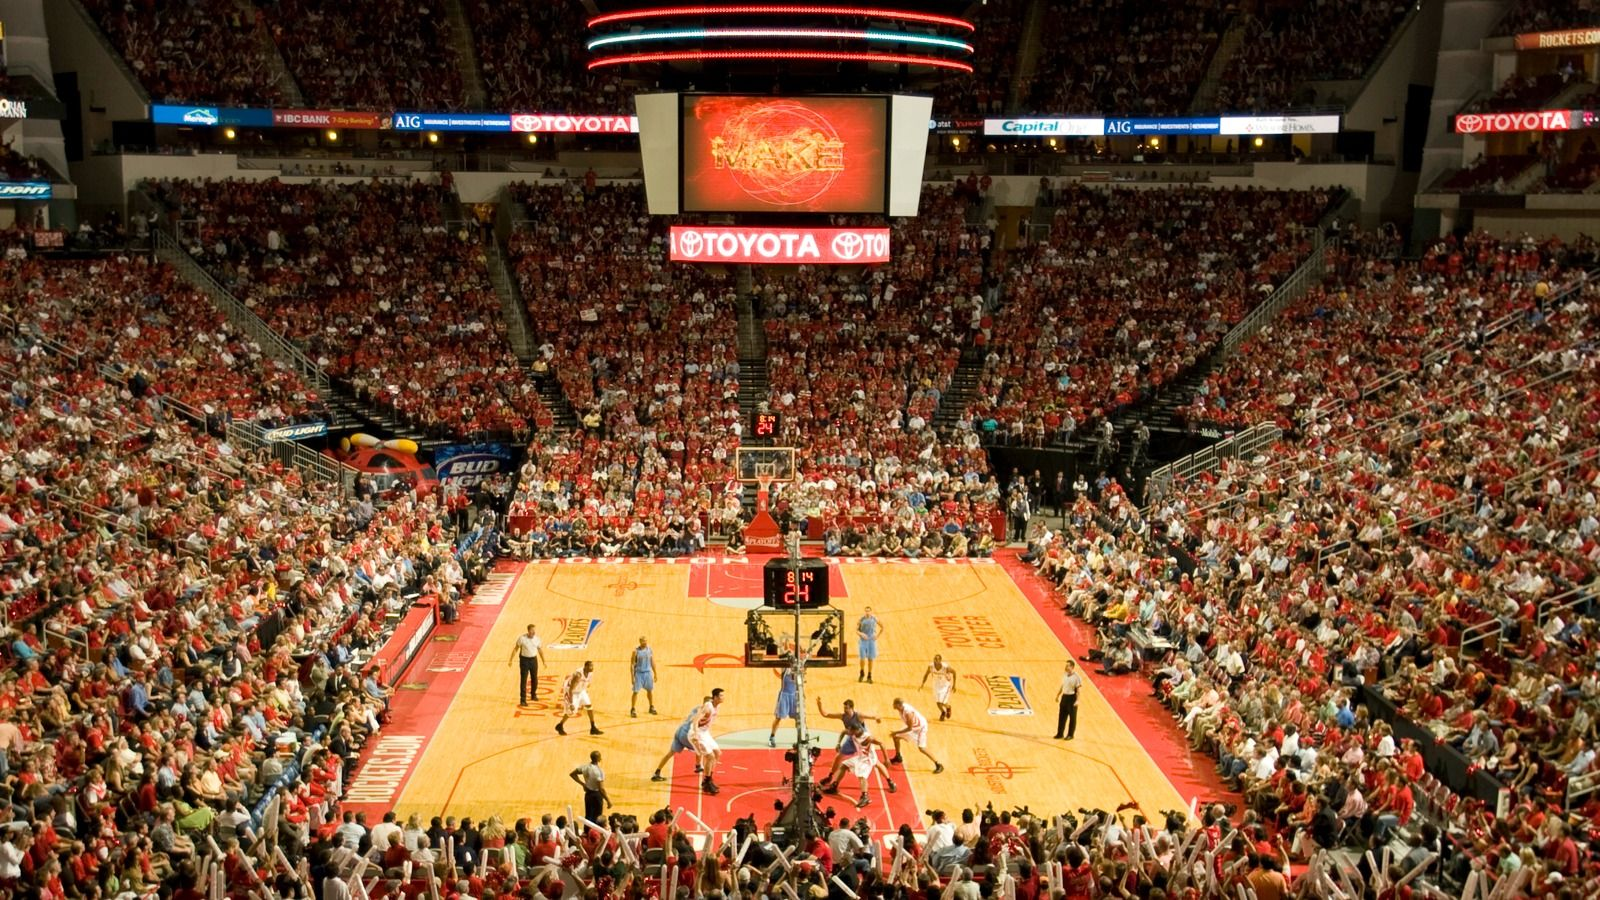 Things to Do in Houston, Texas - Houston Toyota Center